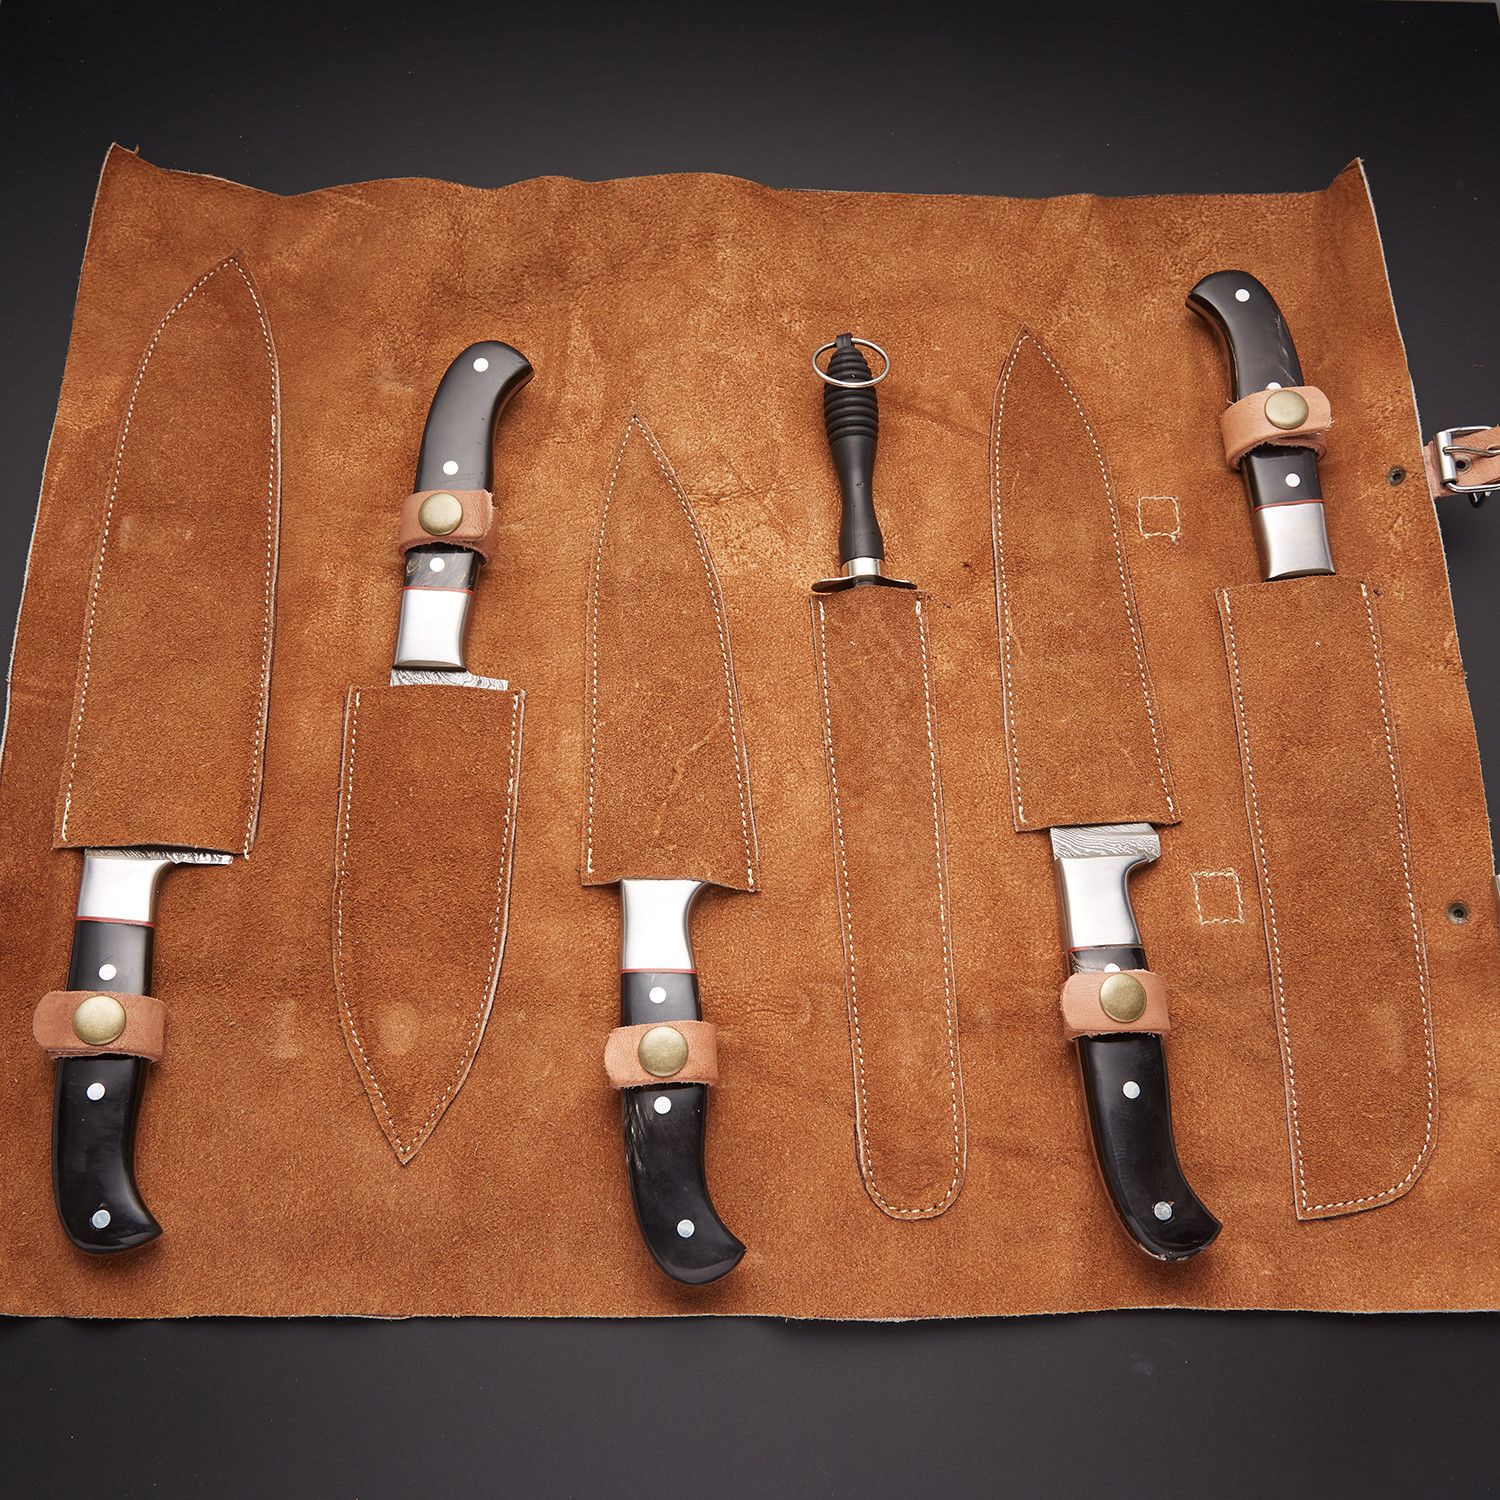 product image for 6 PCS DAMASCUS CHEF/KITCHEN KNIFE + LEATHER ROLL KIT